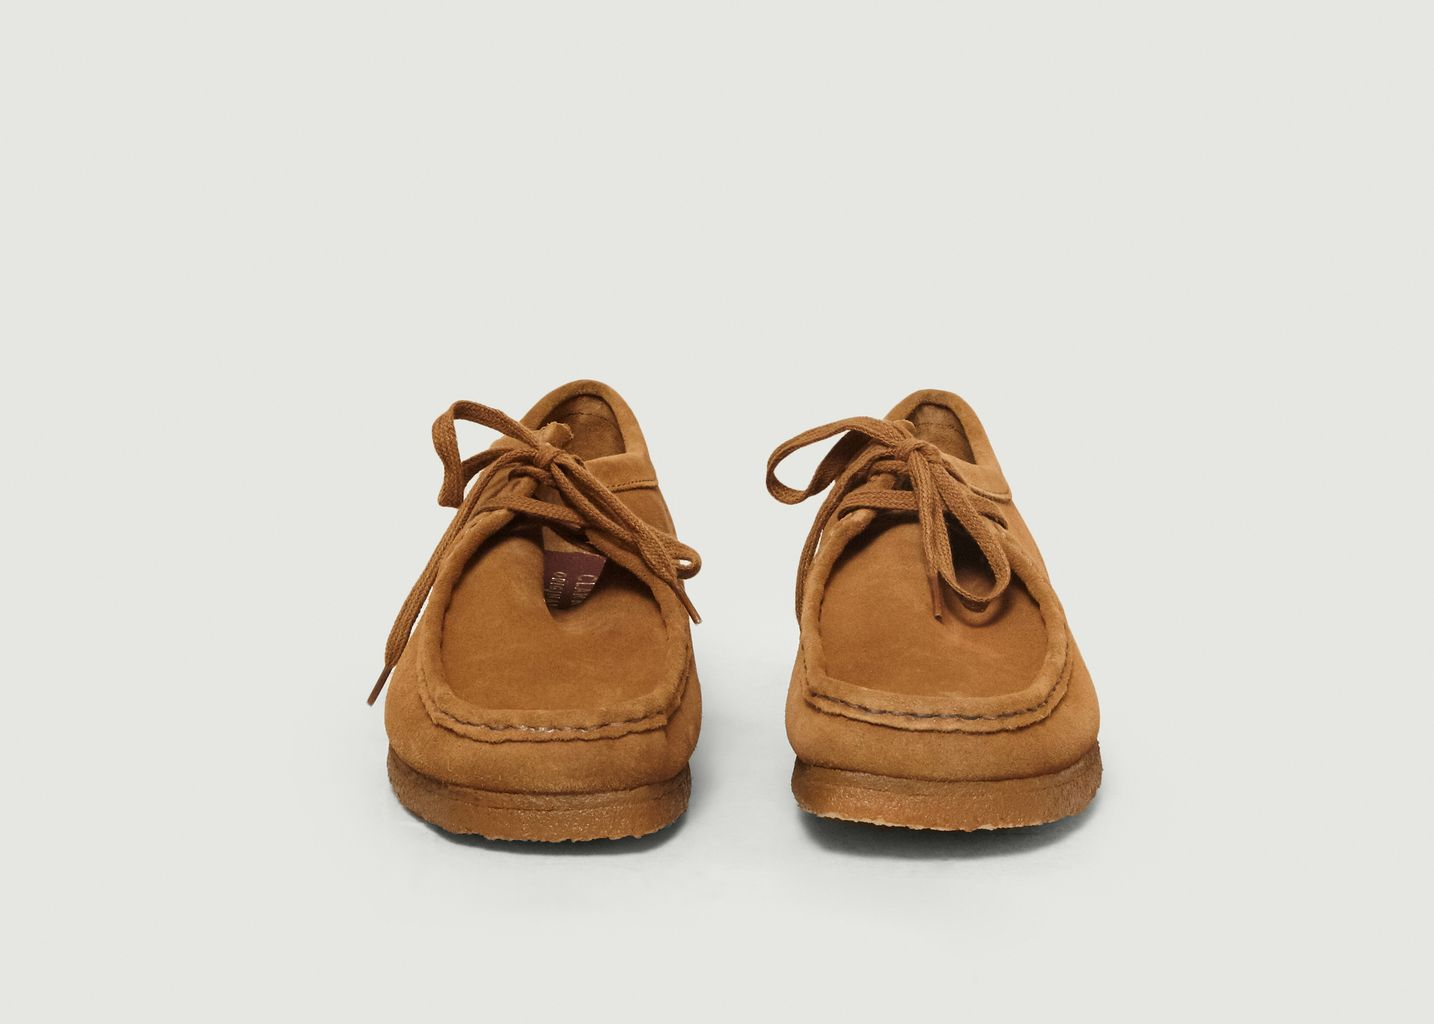 Mocassins Wallabee - Clarks Originals